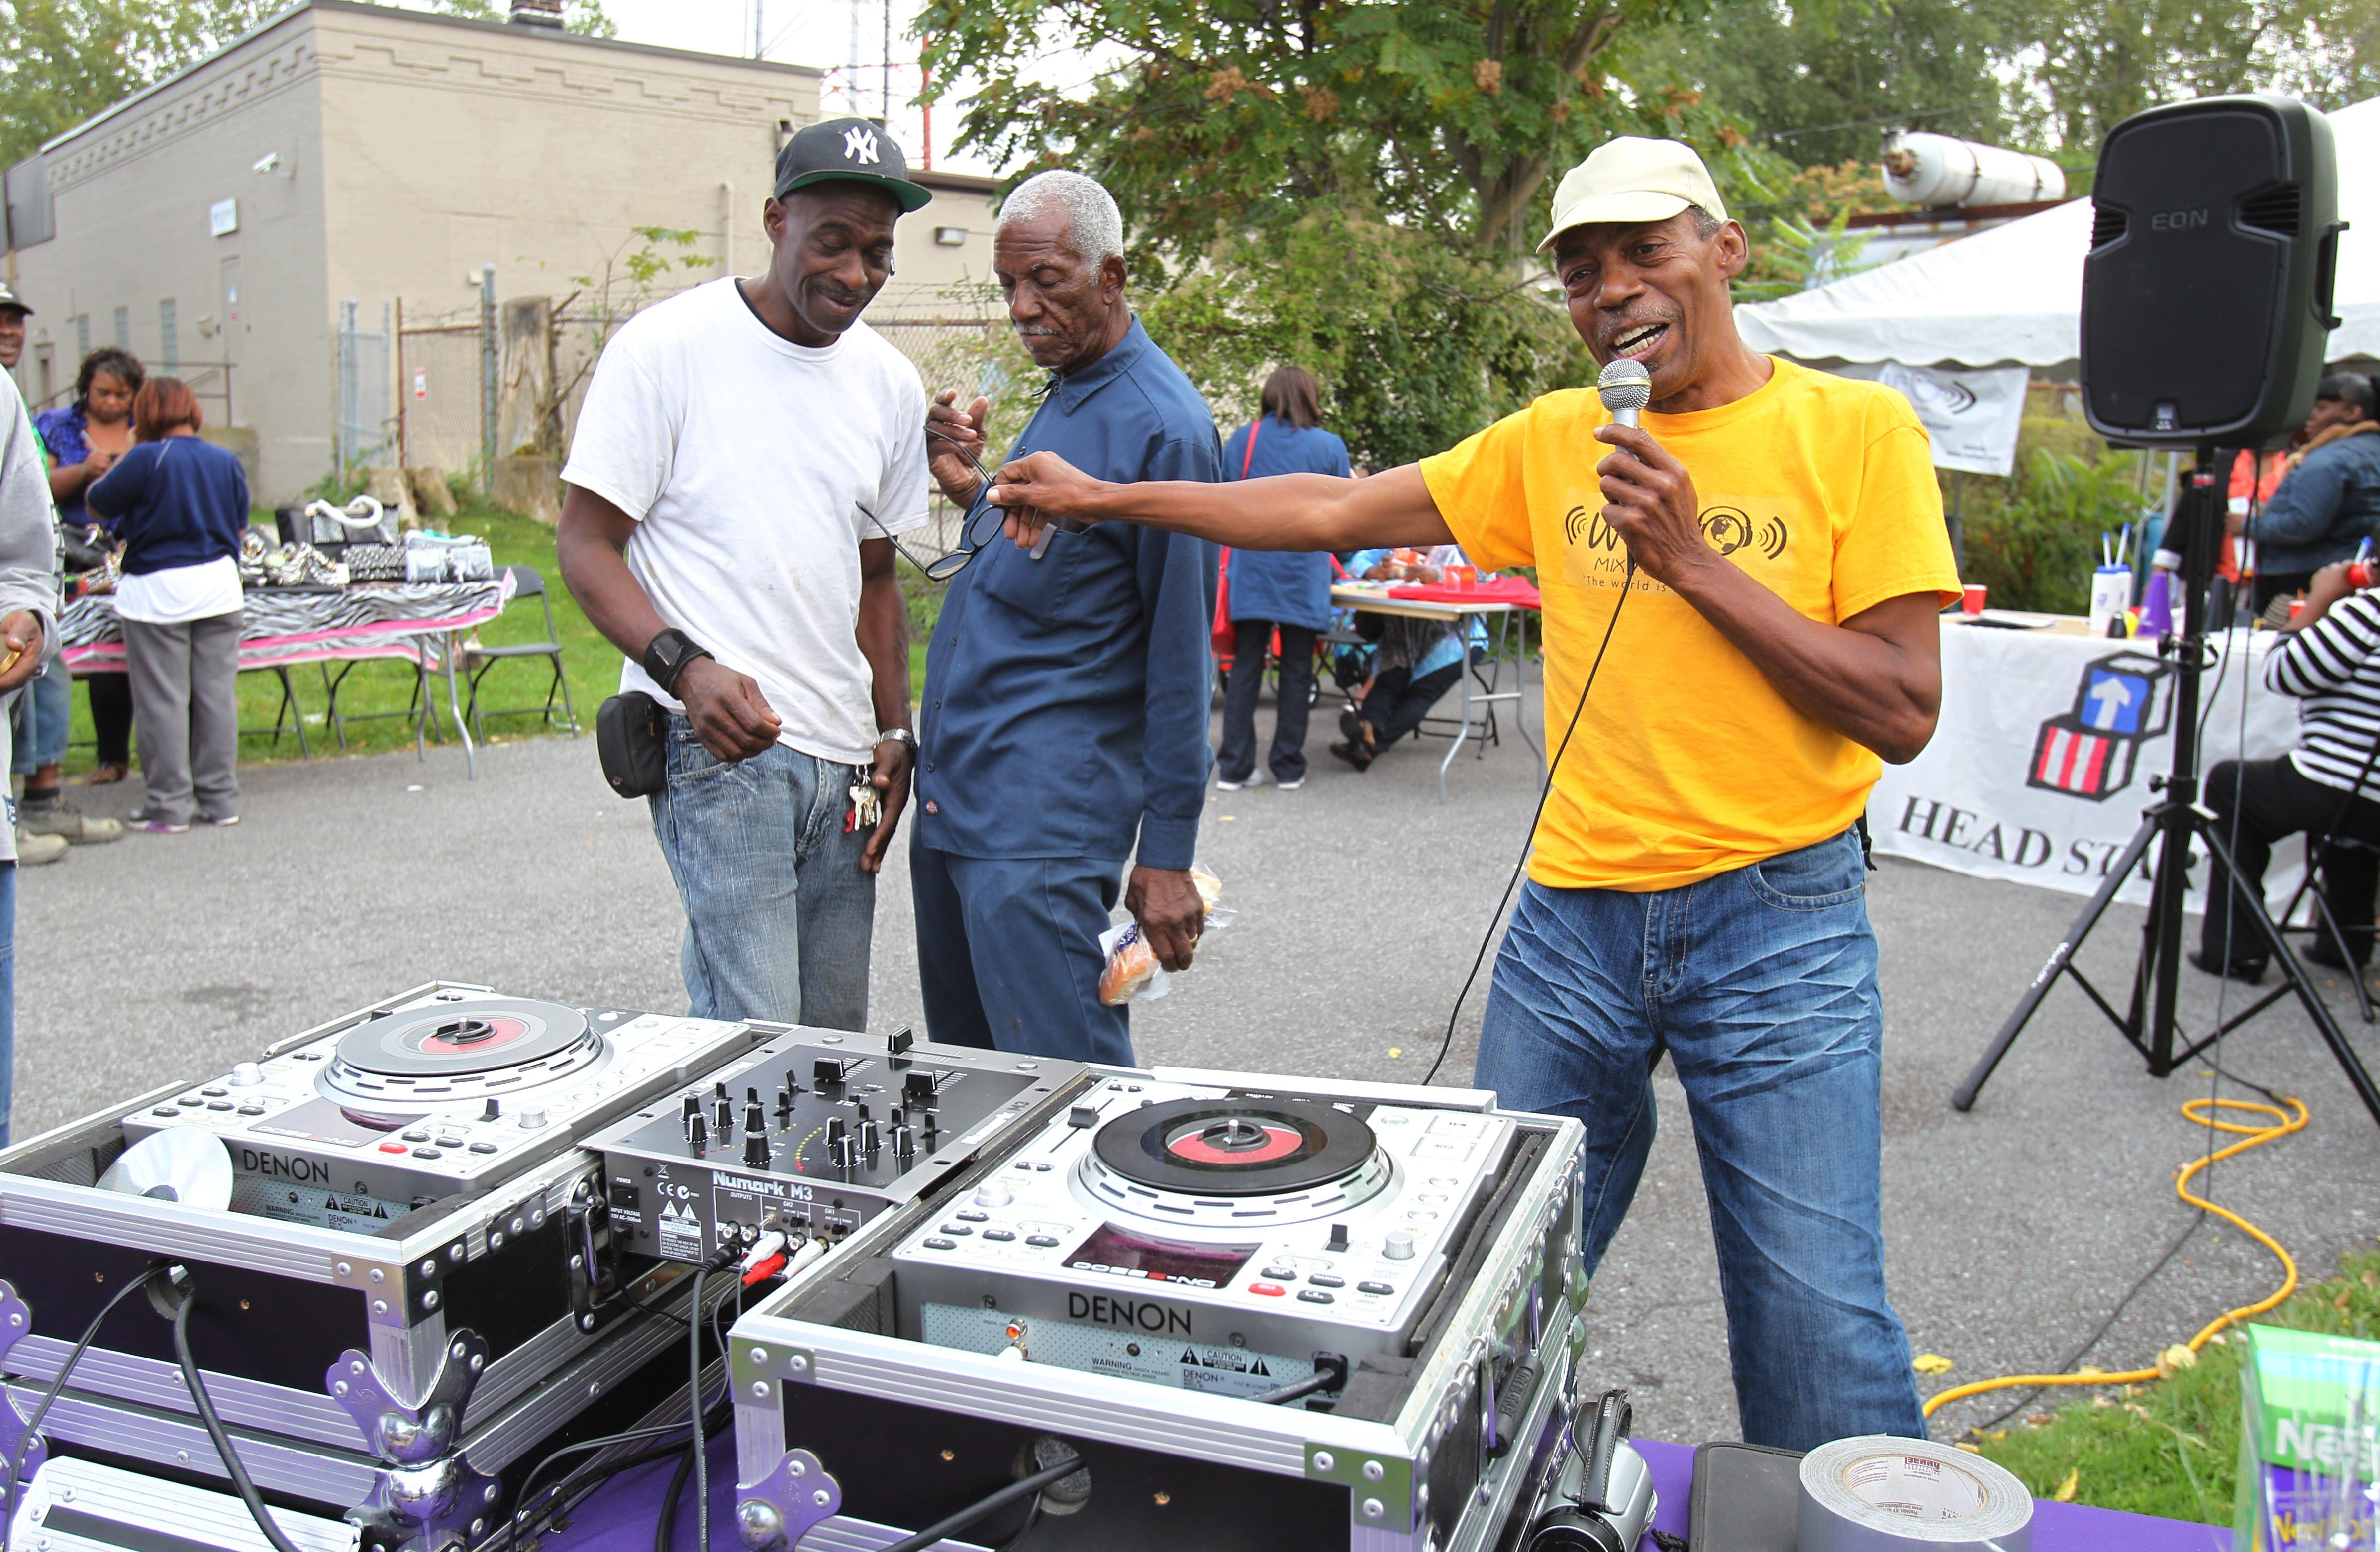 1080 WUFO-AM air personality L.C.H. Roberson deejays Monday's block party outside the station's home on LaSalle Avenue.